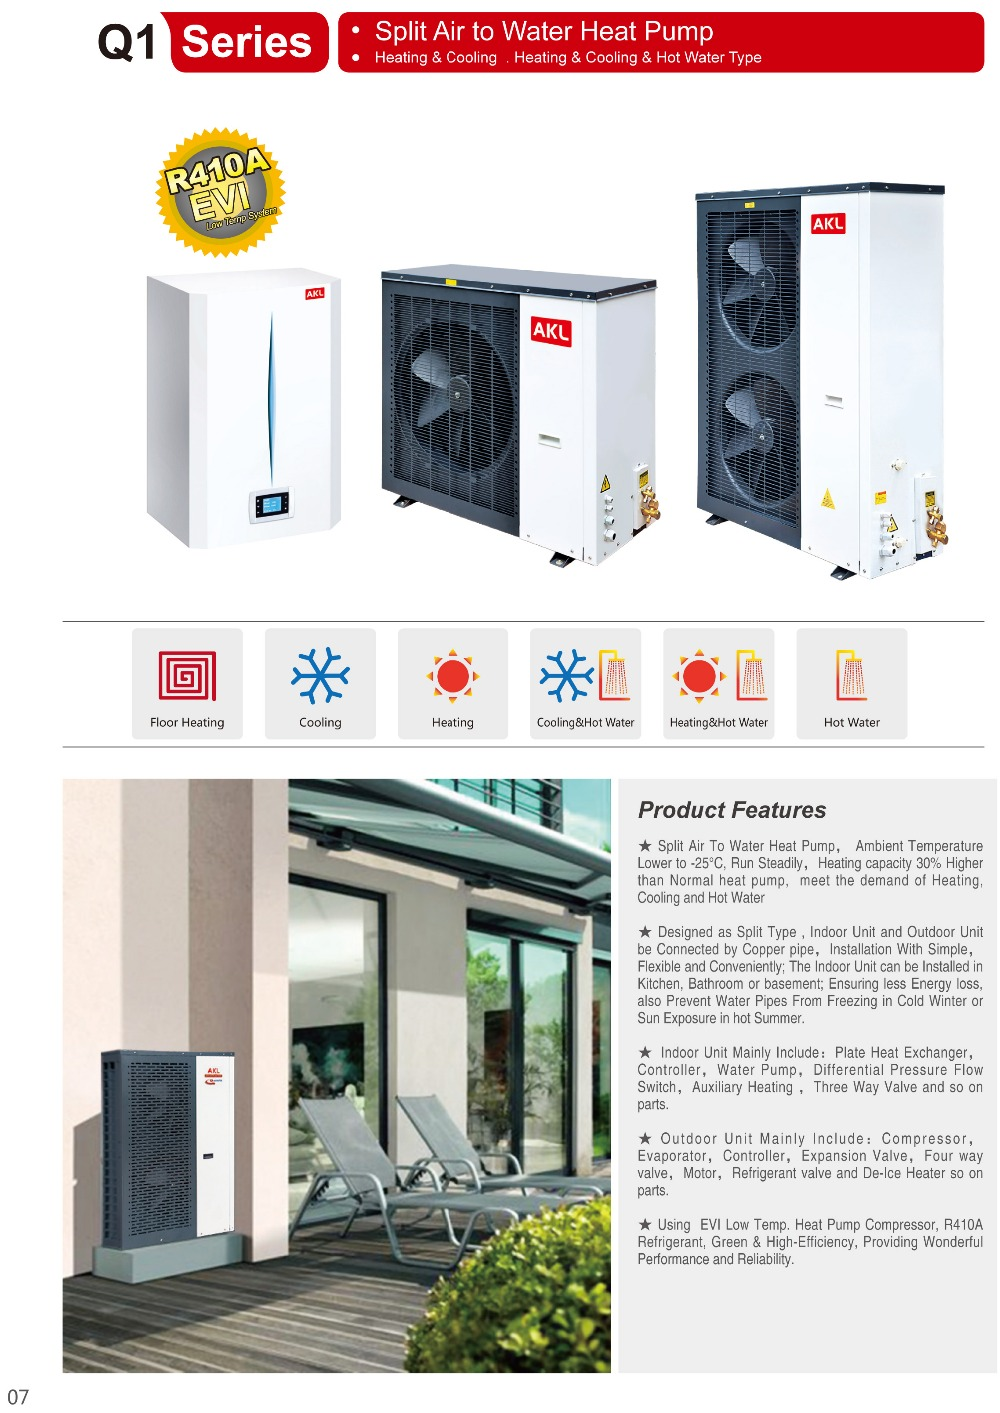 hight resolution of split air to water heat pump floor heating heaing cooling hot water evi heat